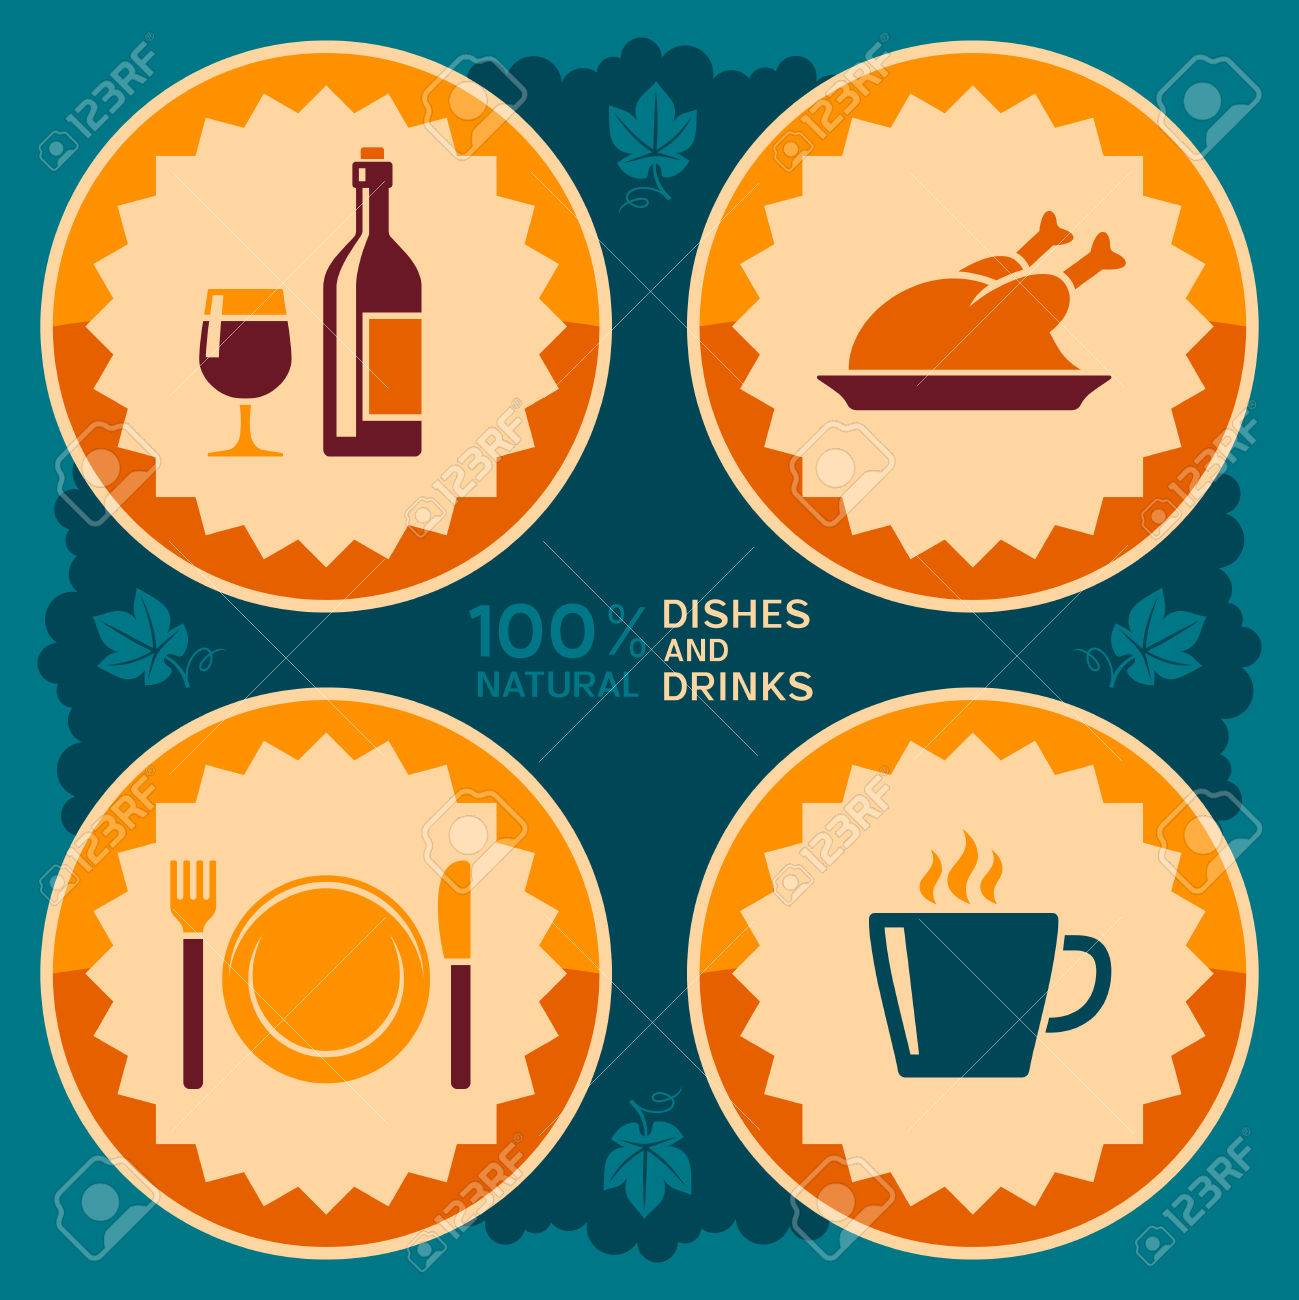 Poster design restaurant - Restaurant Poster Design With Food And Drink Icons Stock Vector 29457747